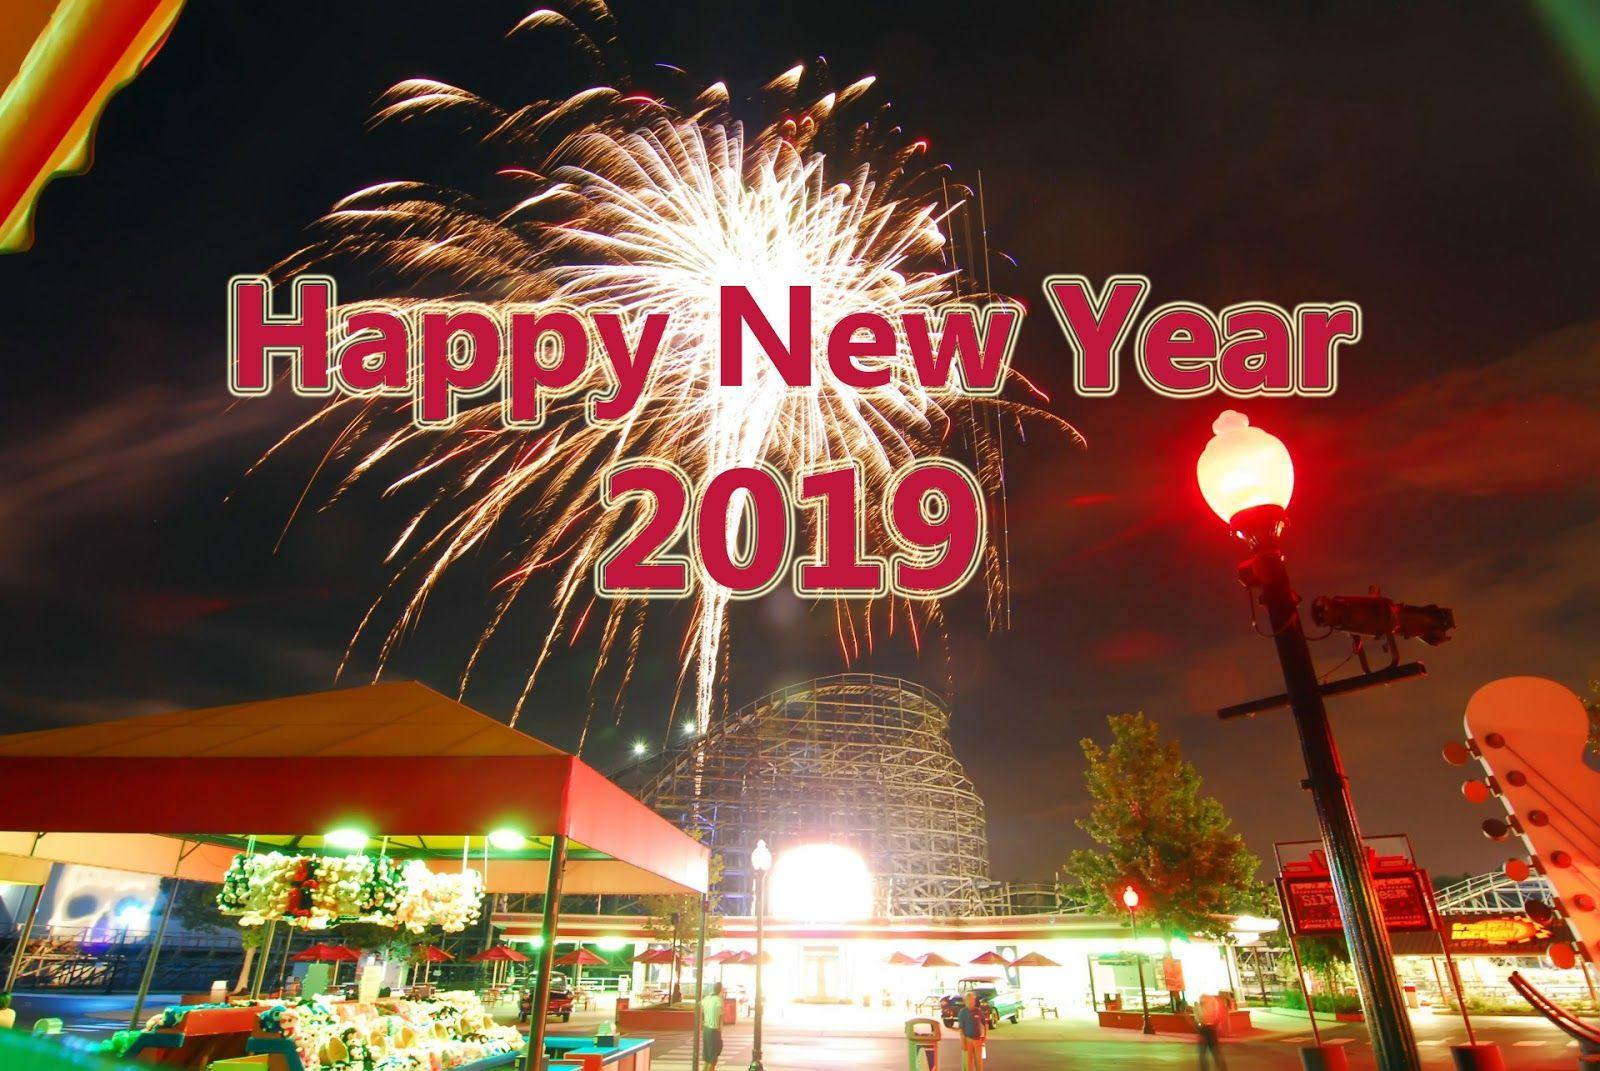 new year 2019 wallpaper 4 1600 x 1071 stmed net download